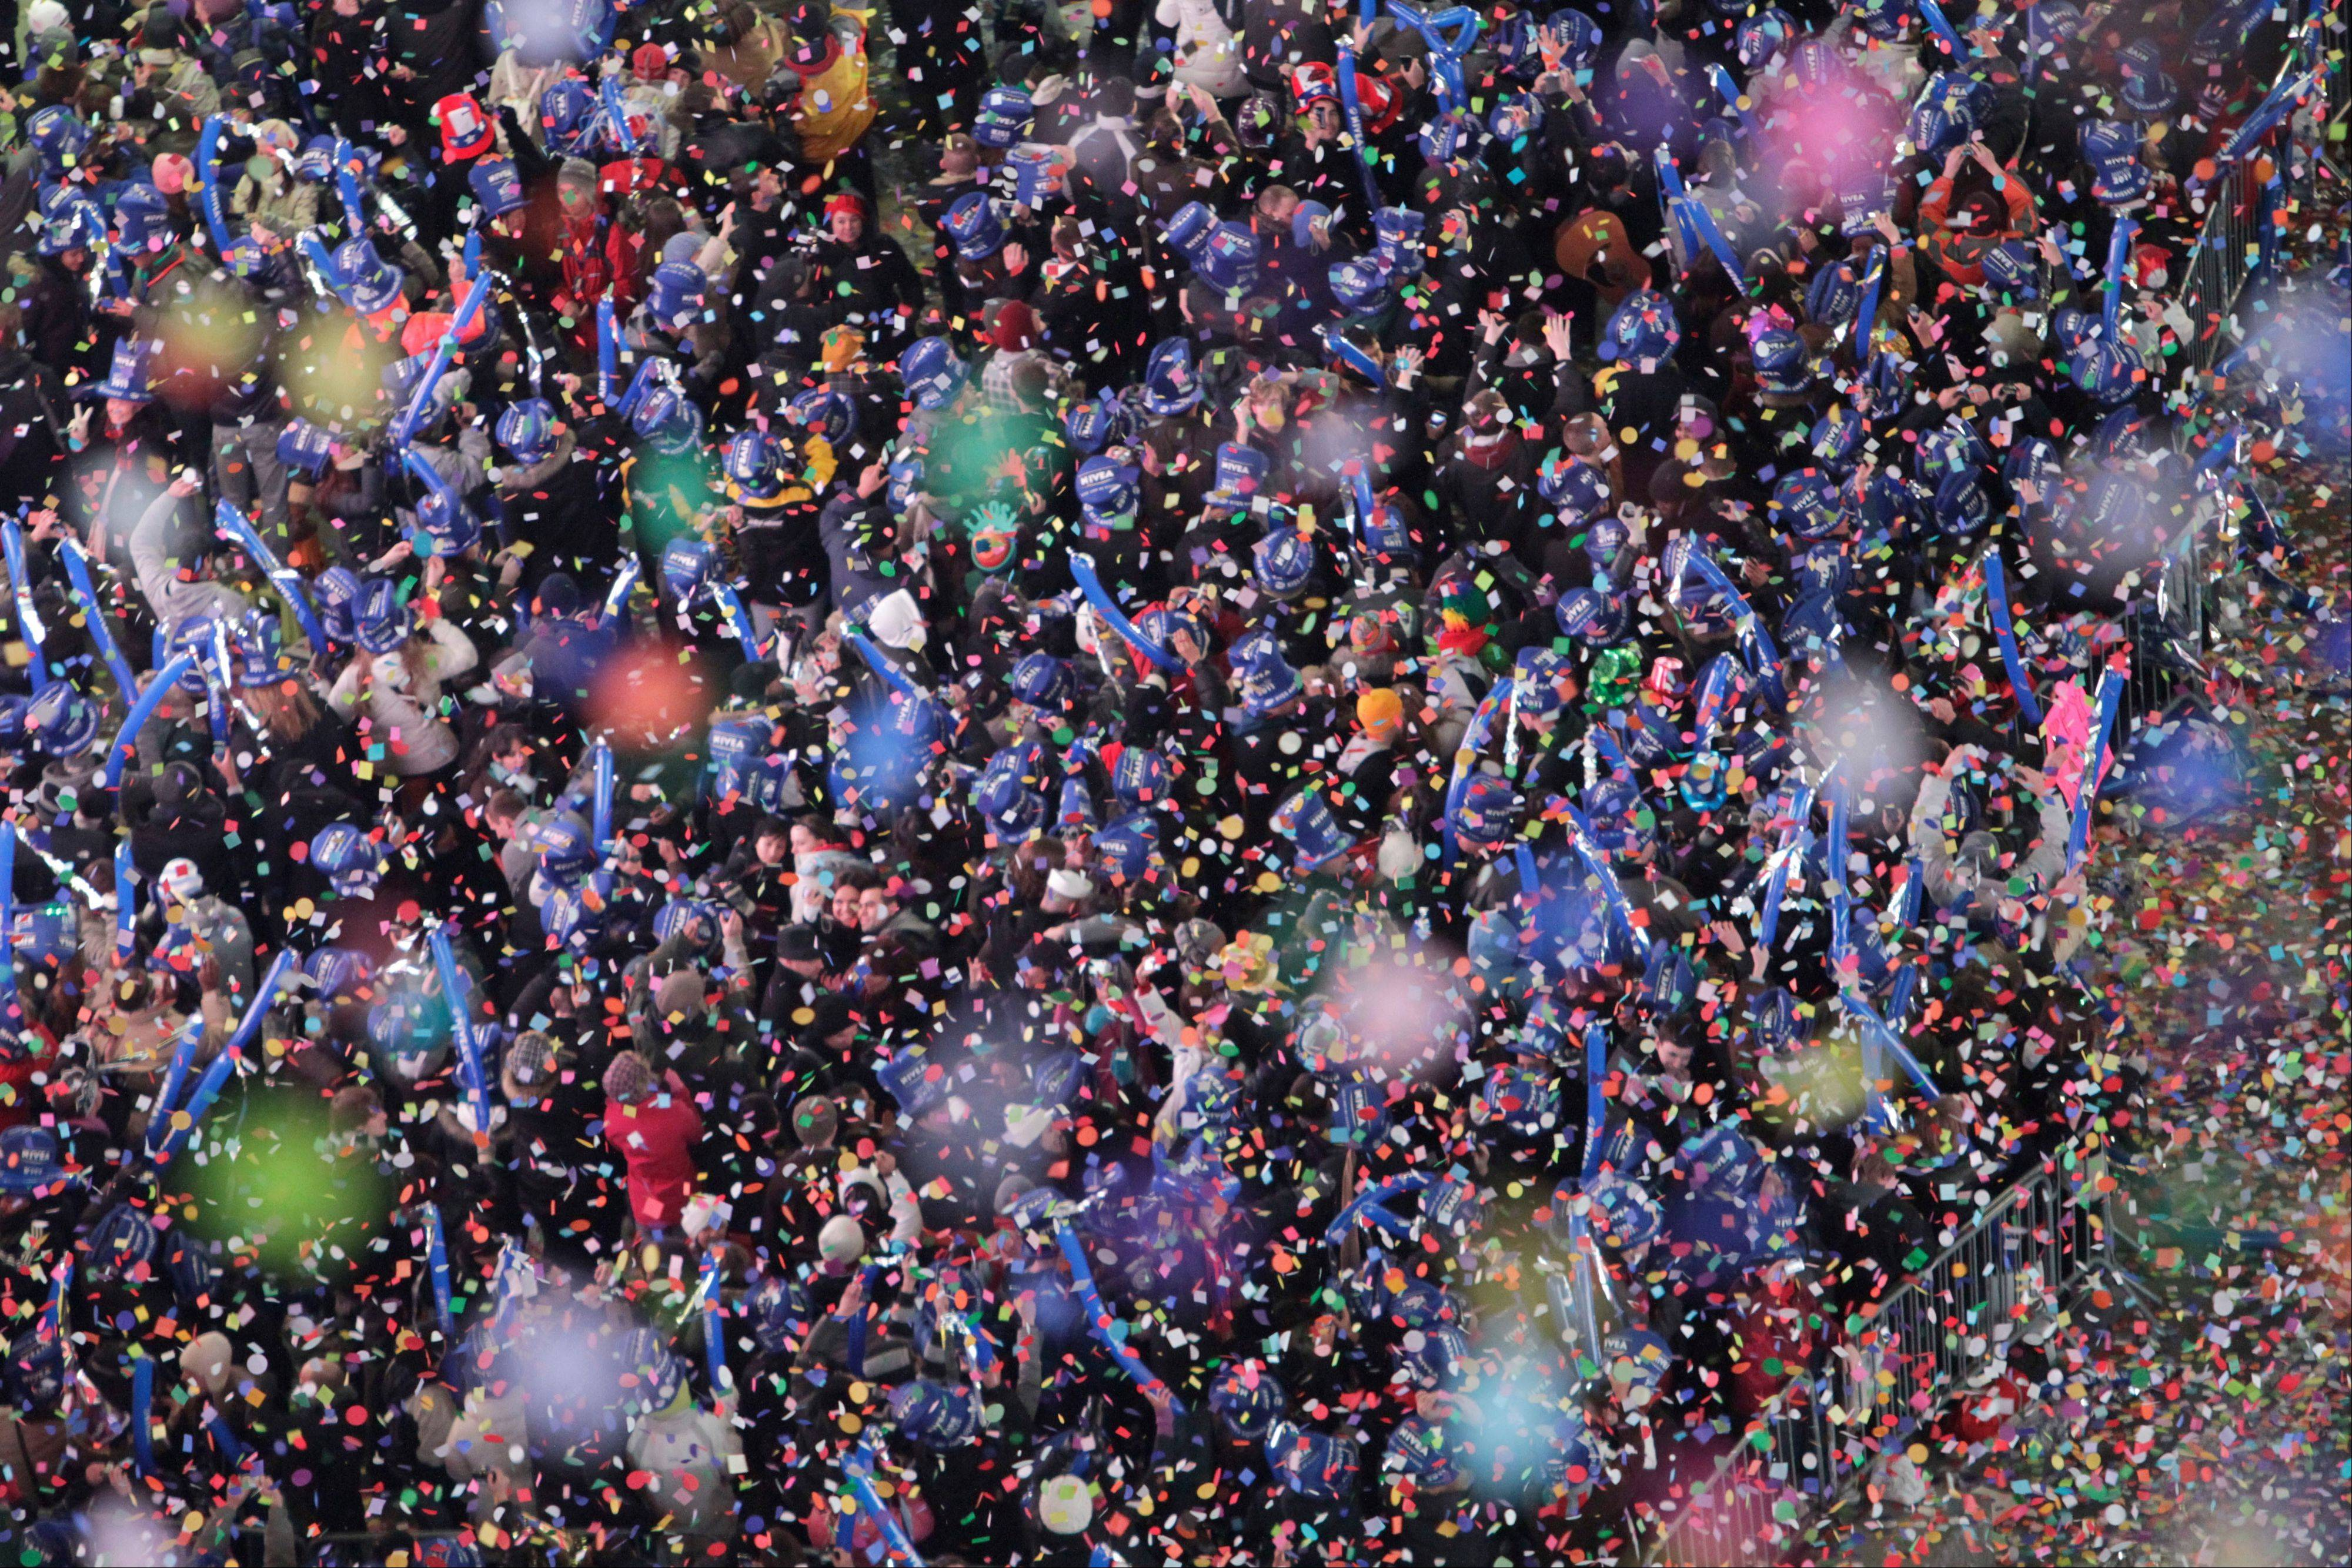 Confetti falls over revelers in New York's Times Square as the clock strikes midnight during a New Year's Eve celebration. The holidays often mean an excess of booze and drugs.